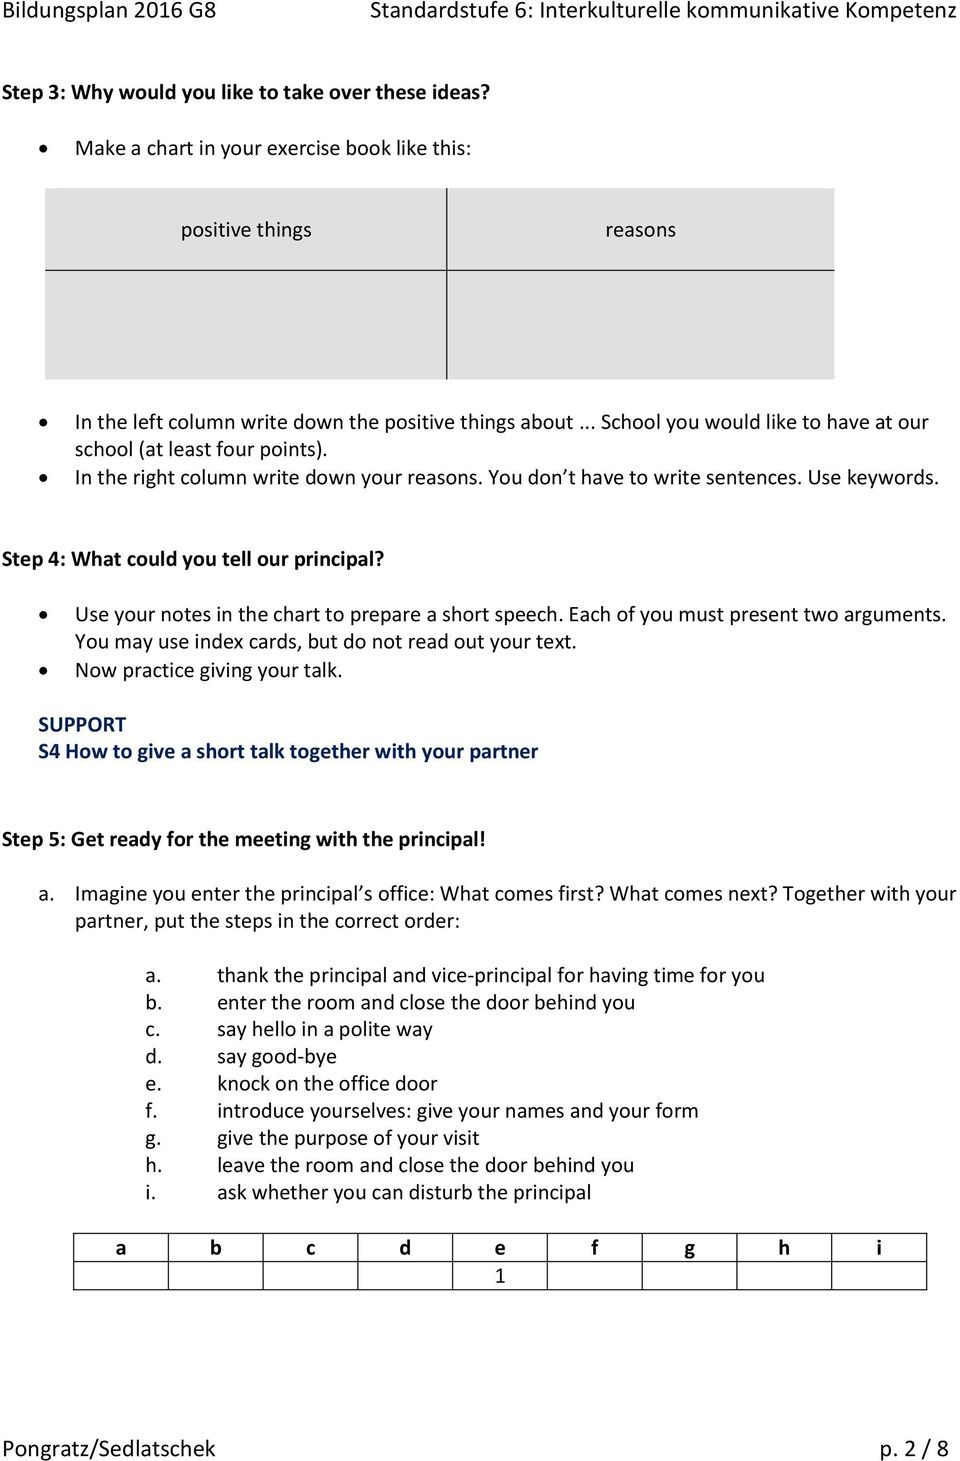 Step 4: What could you tell our principal? Use your notes in the chart to prepare a short speech. Each of you must present two arguments. You may use index cards, but do not read out your text.